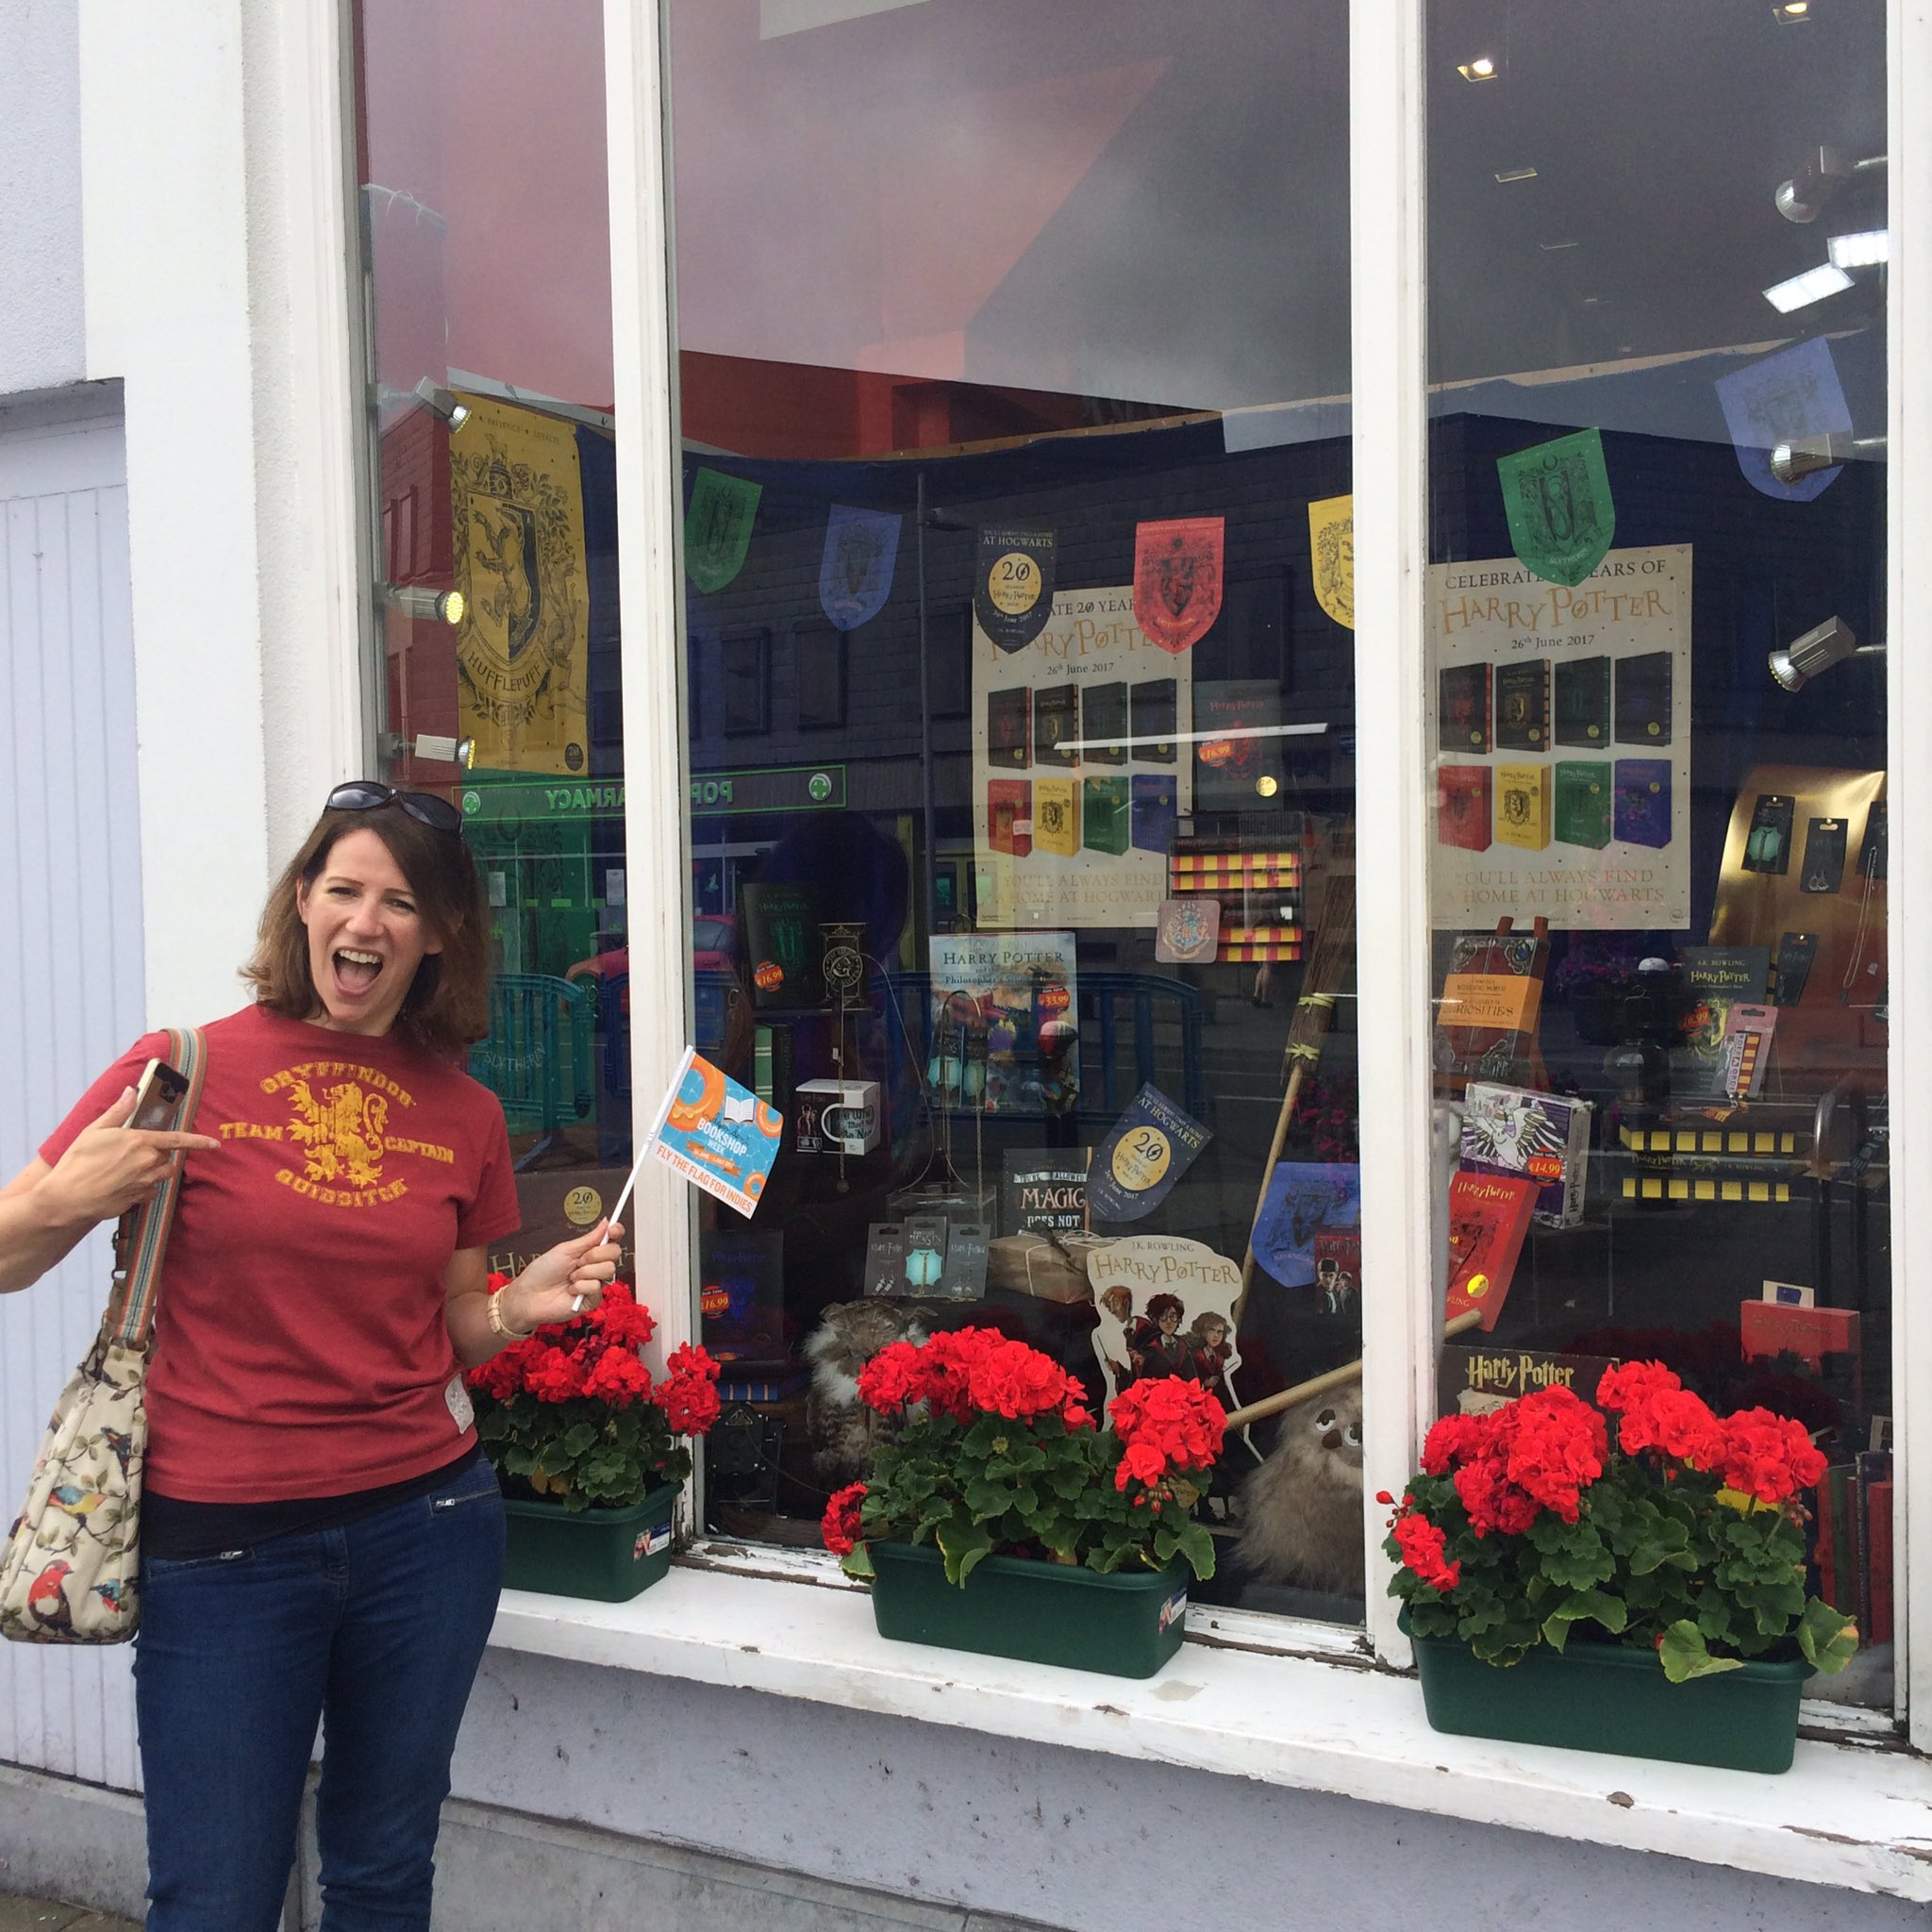 Stop No. 2: @BarkerJonesNaas, who have a FAB Harry Potter window to match @HazelGaynor's T-shirt! #IBW17 #ibw2017 #bookshopcrawl https://t.co/iukijmx0Nz